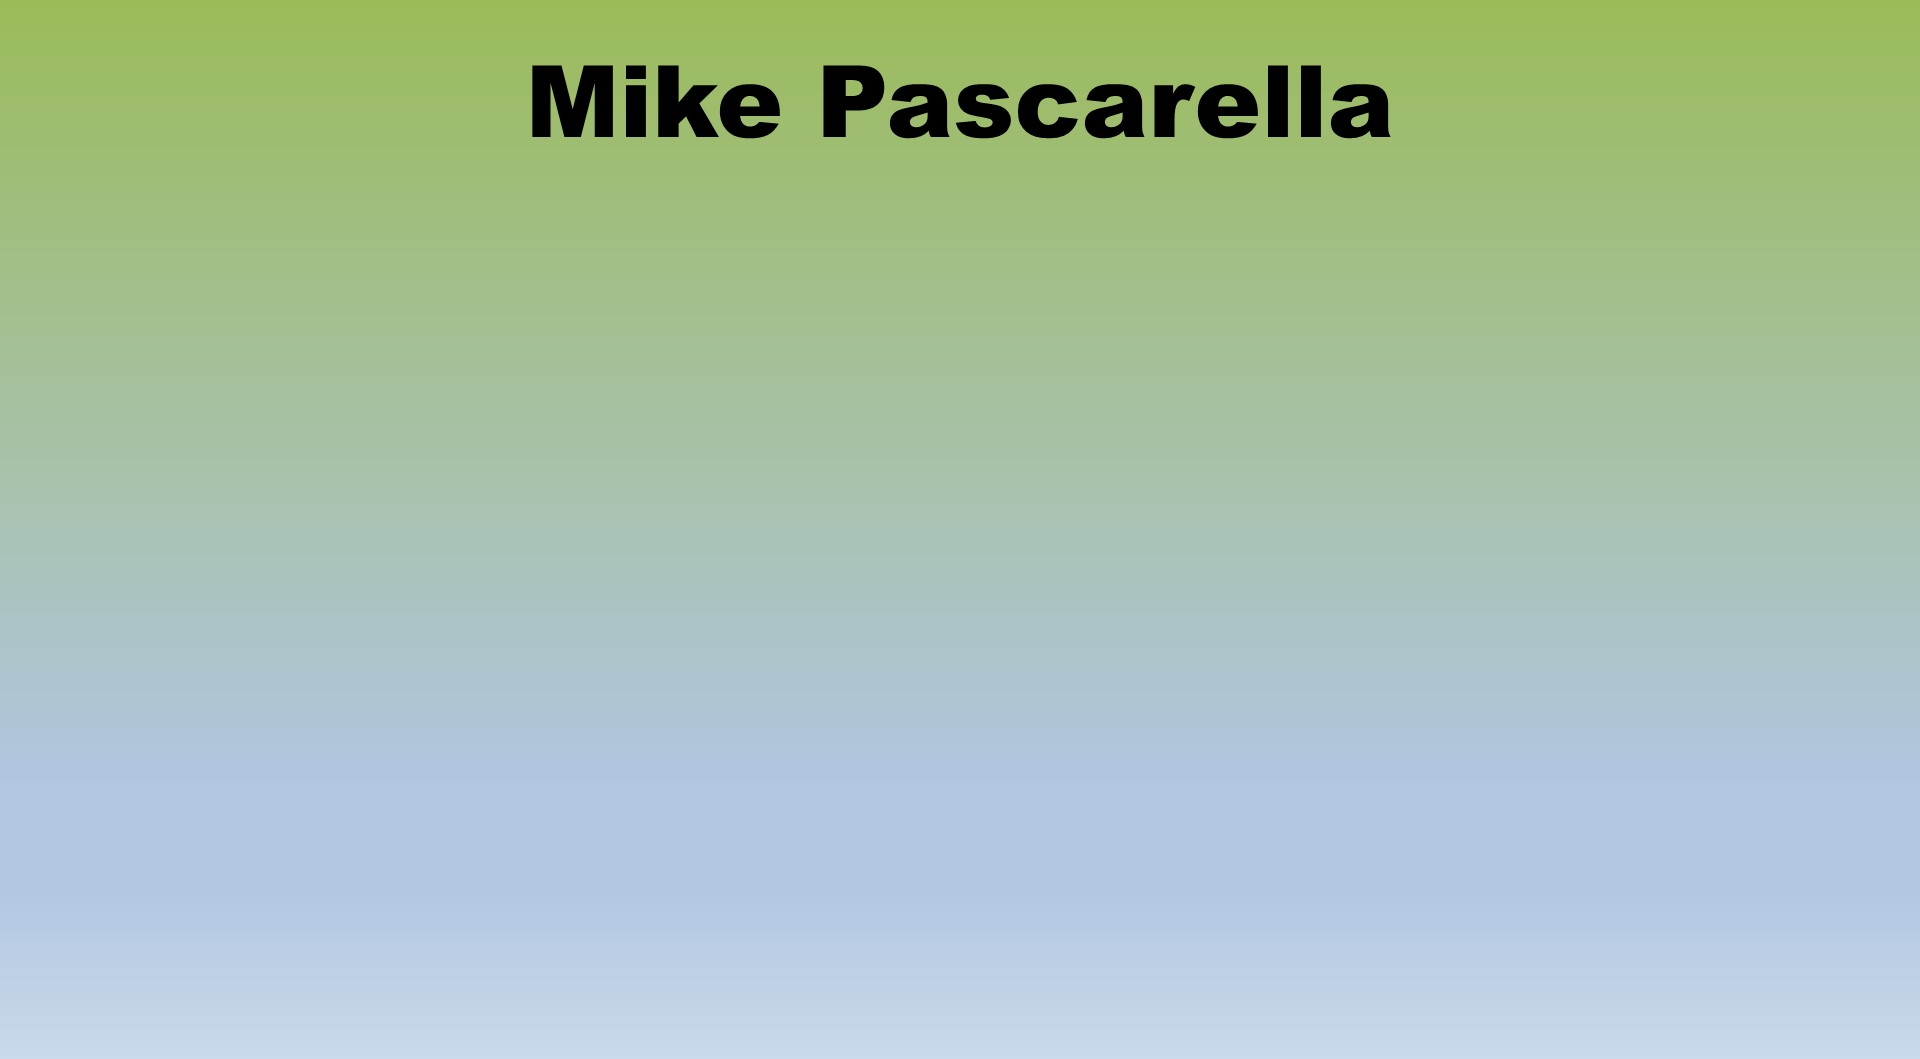 Mike Pascarella.jpg